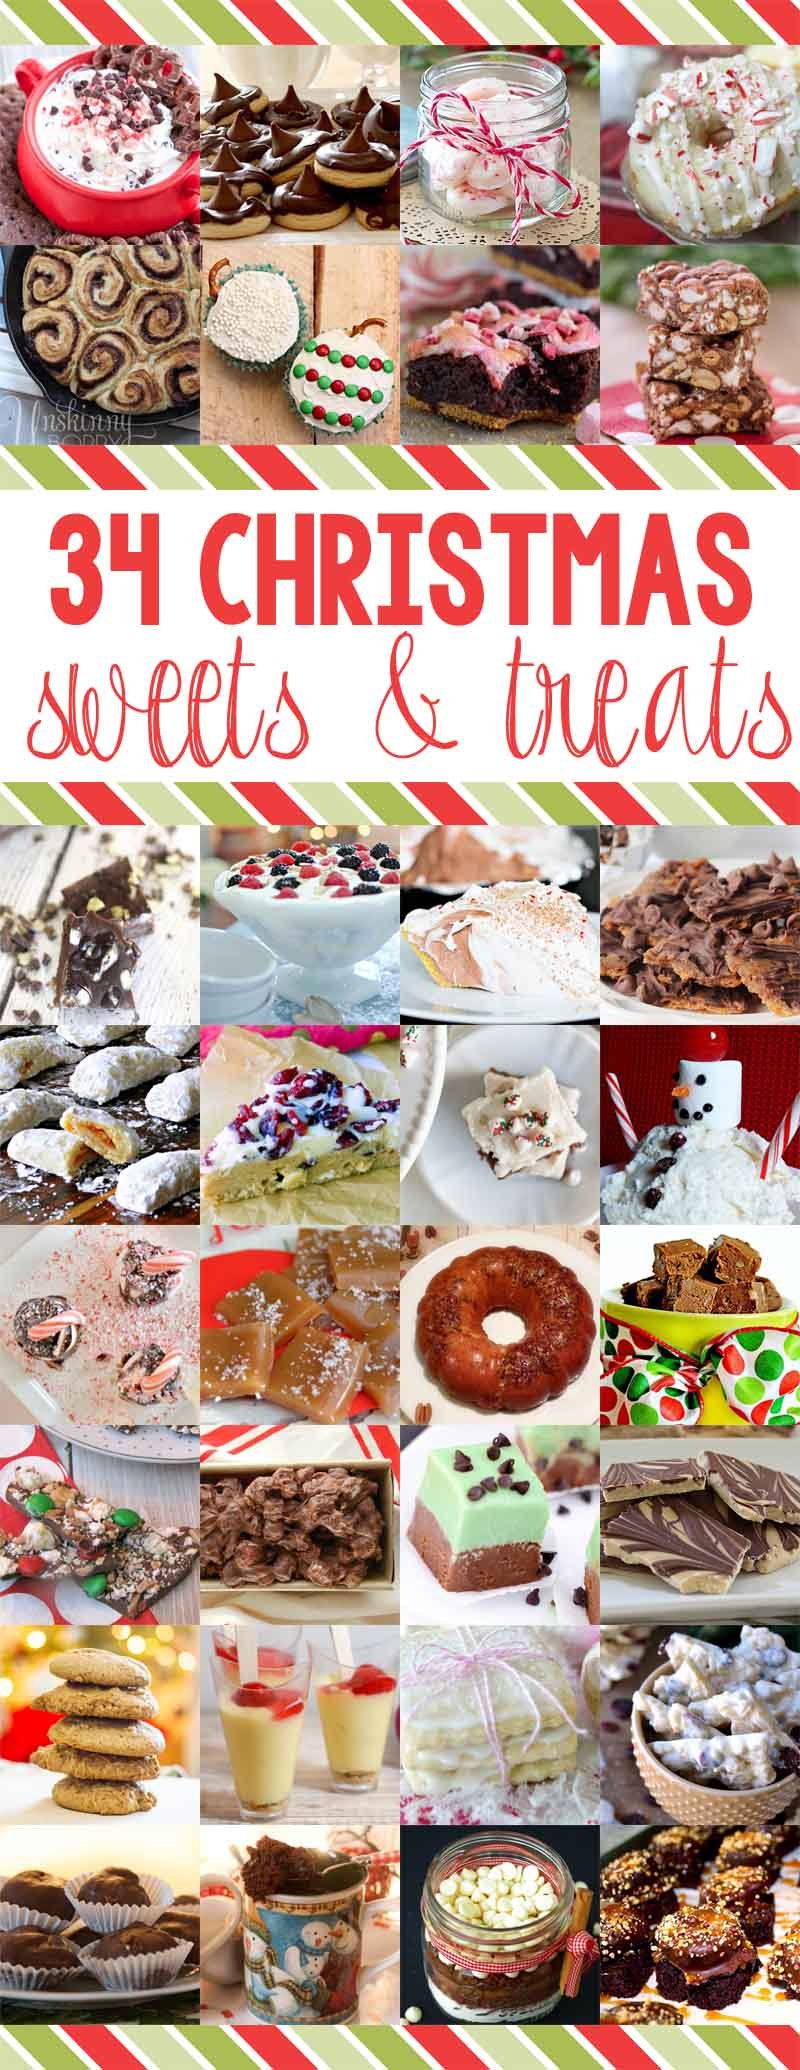 34 Christmas Sweets and Treats Recipes to satisfy your sweet tooth! www.setttingforfour.com